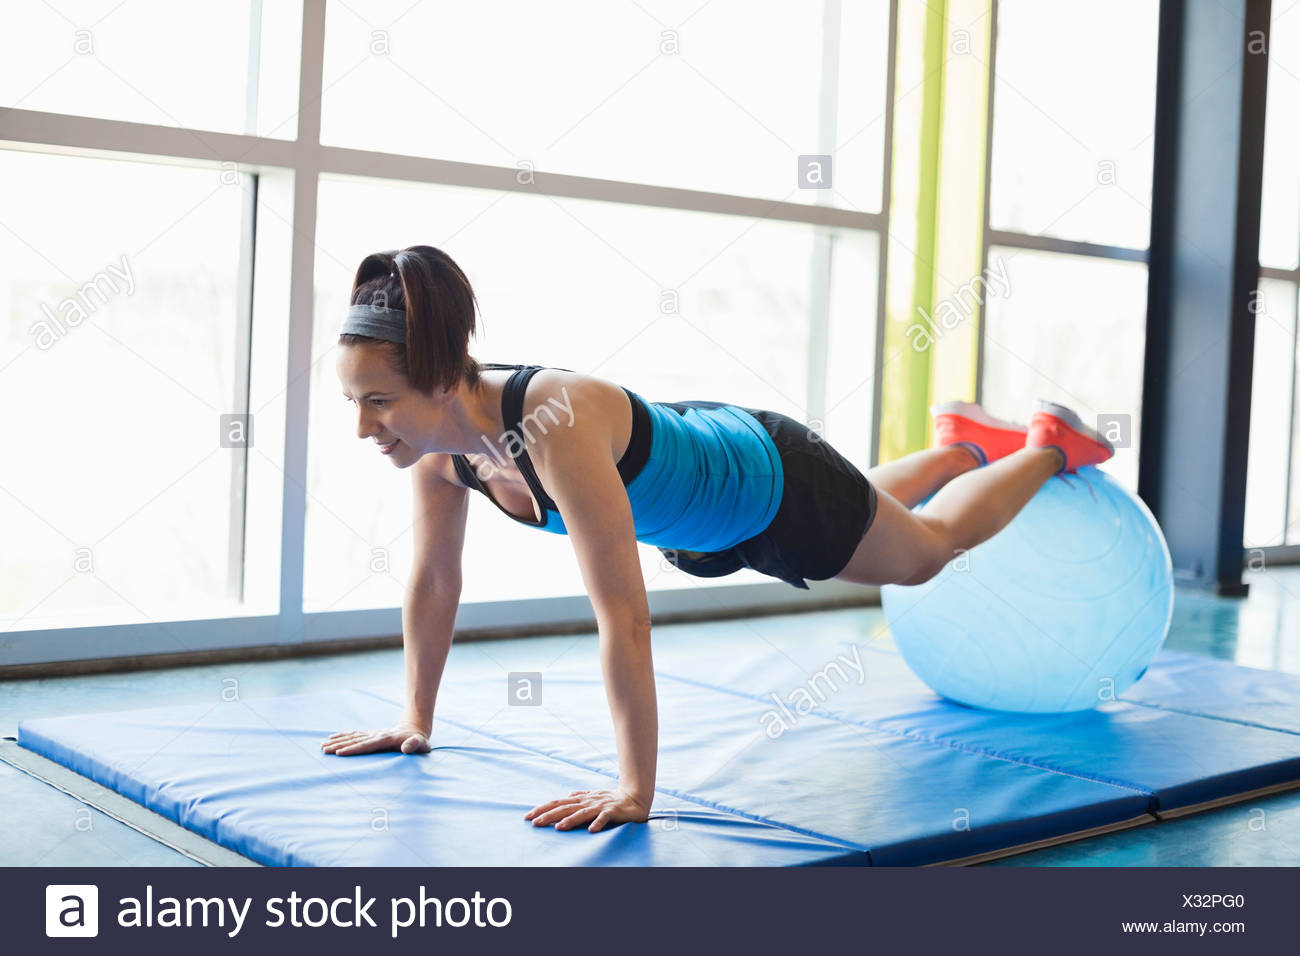 Woman exercising with fitness ball in fitness center - Stock Image